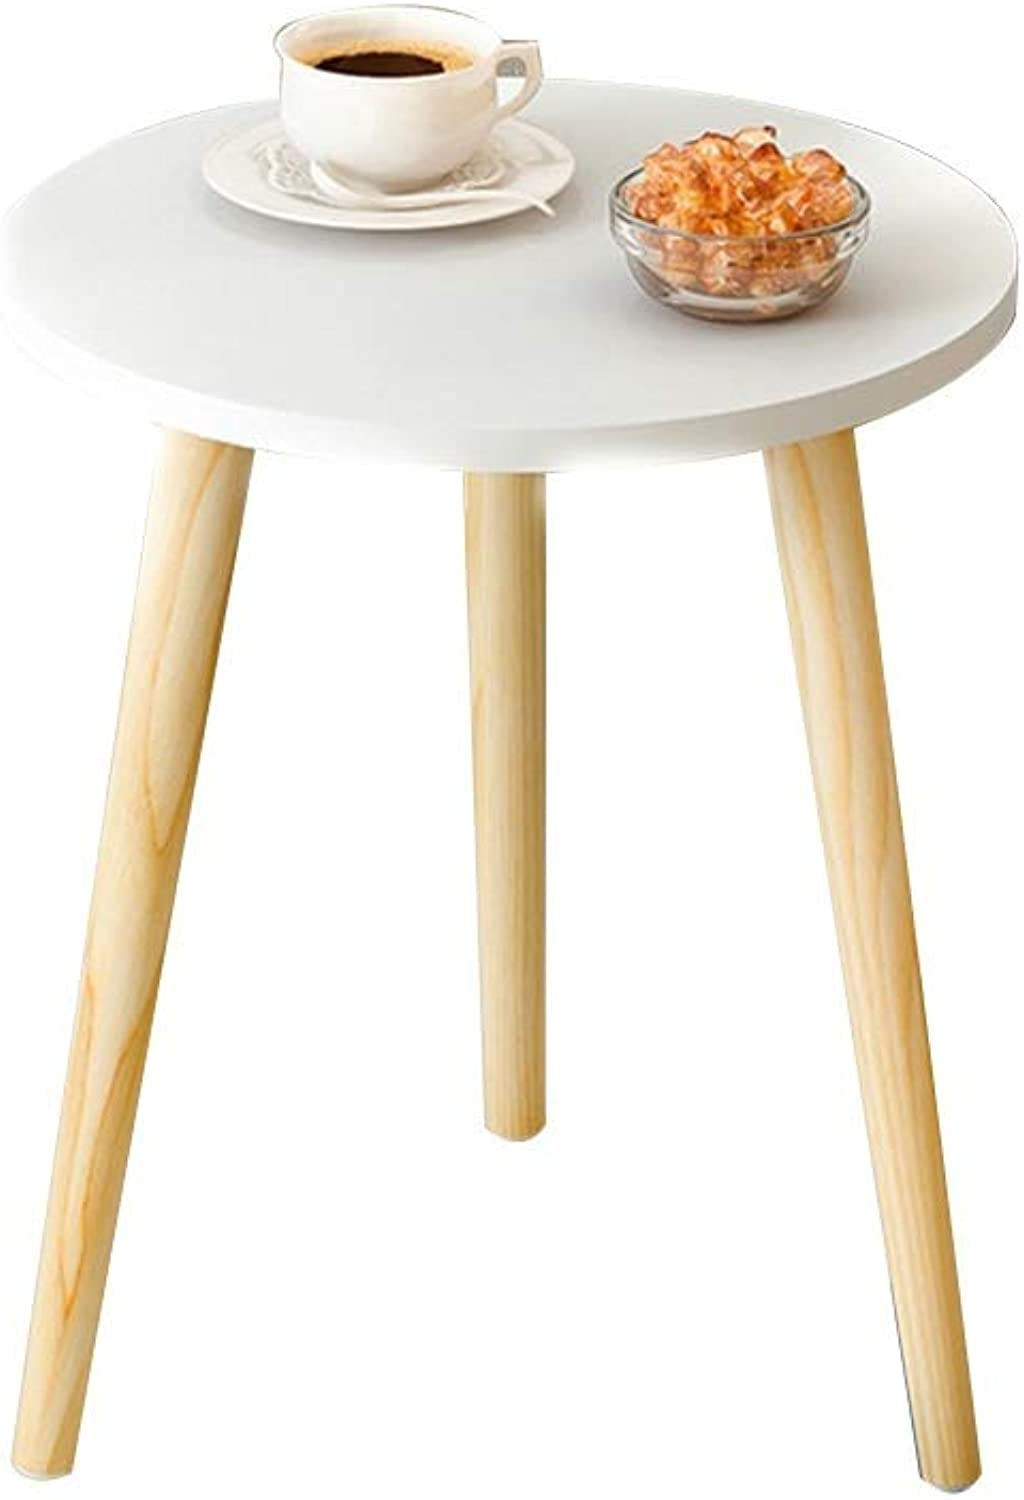 Coffee Table Side Table, Mini Small Apartment Coffee Table Spacious Desktop Solid Wood Sofa Corner Table (Size   14  14  16.8 in)